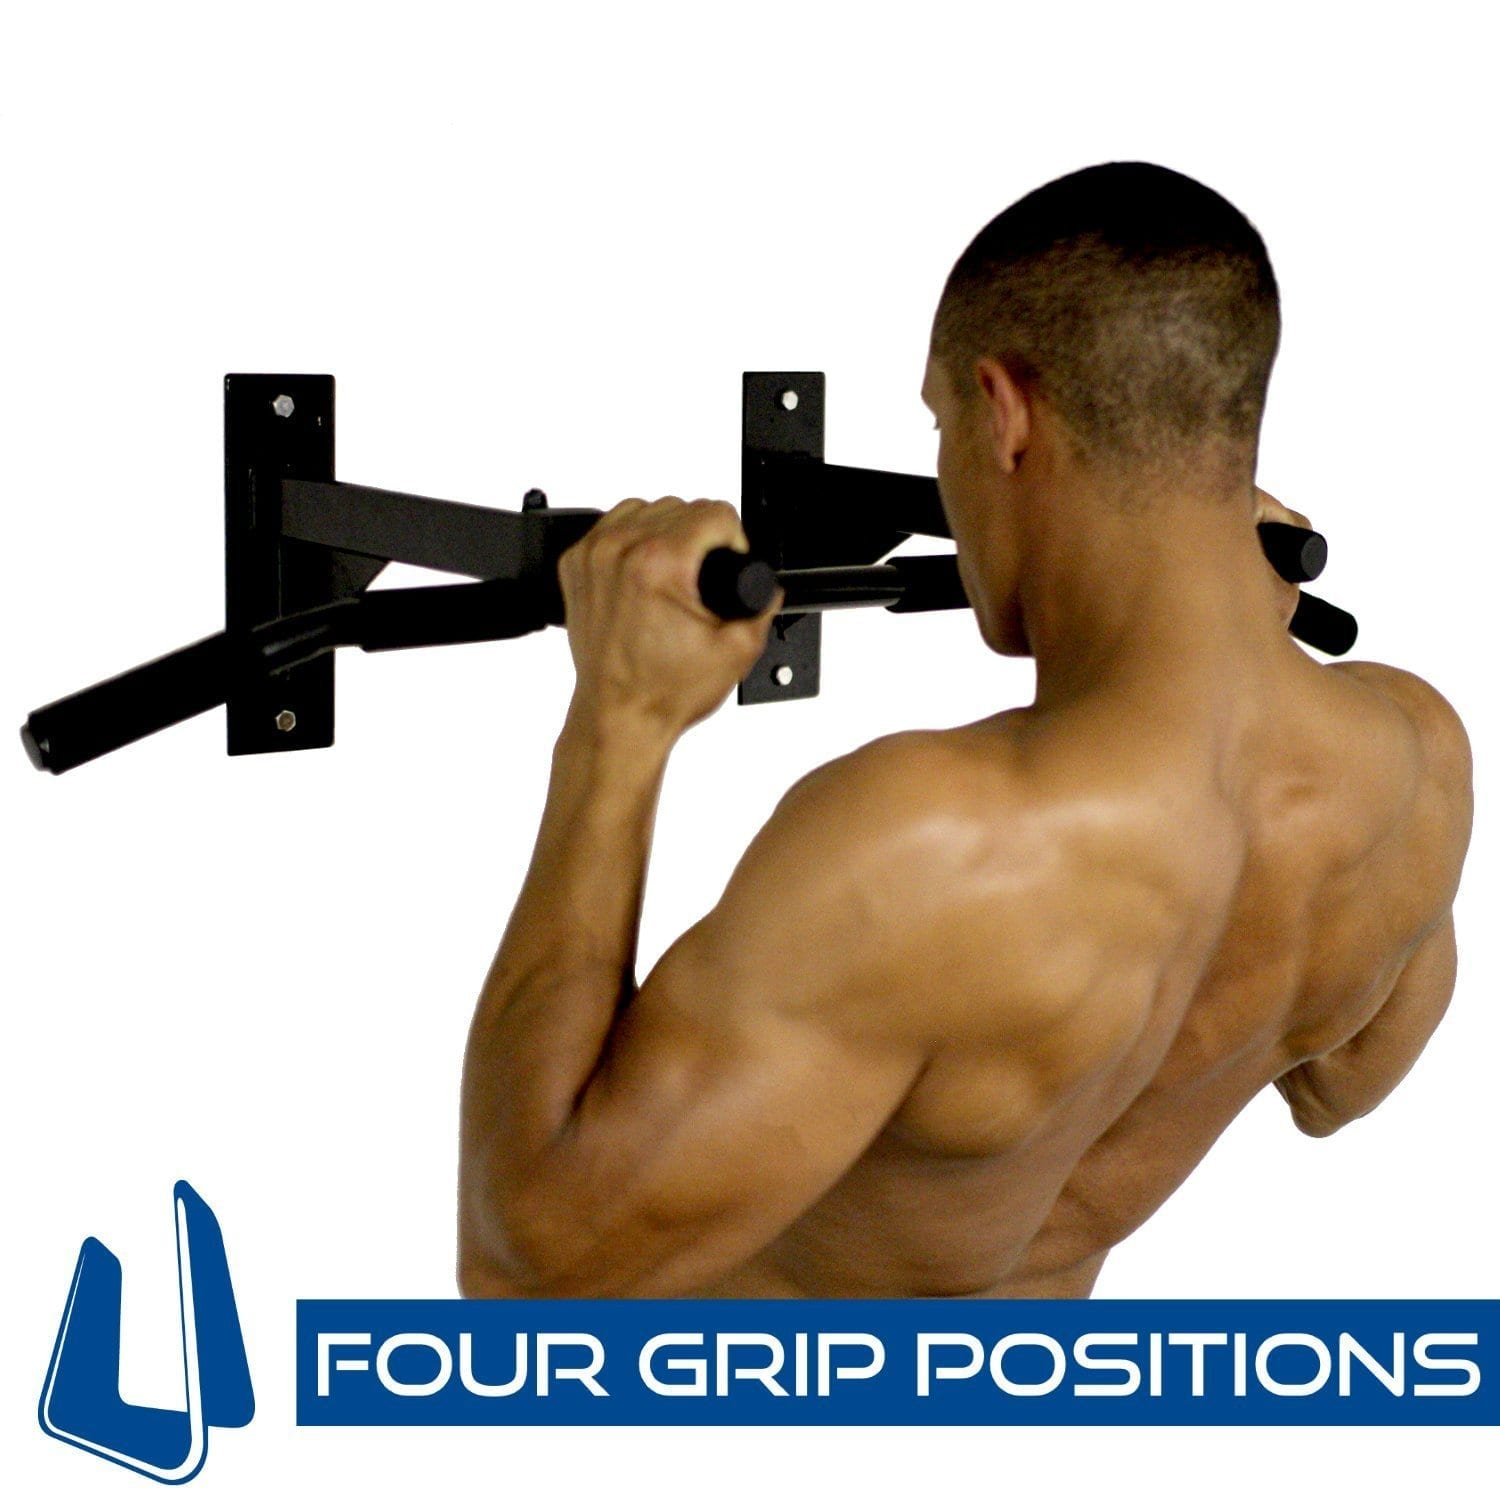 Is The Ultimate Body Press Wall Mounted Pull Up Bar Worth